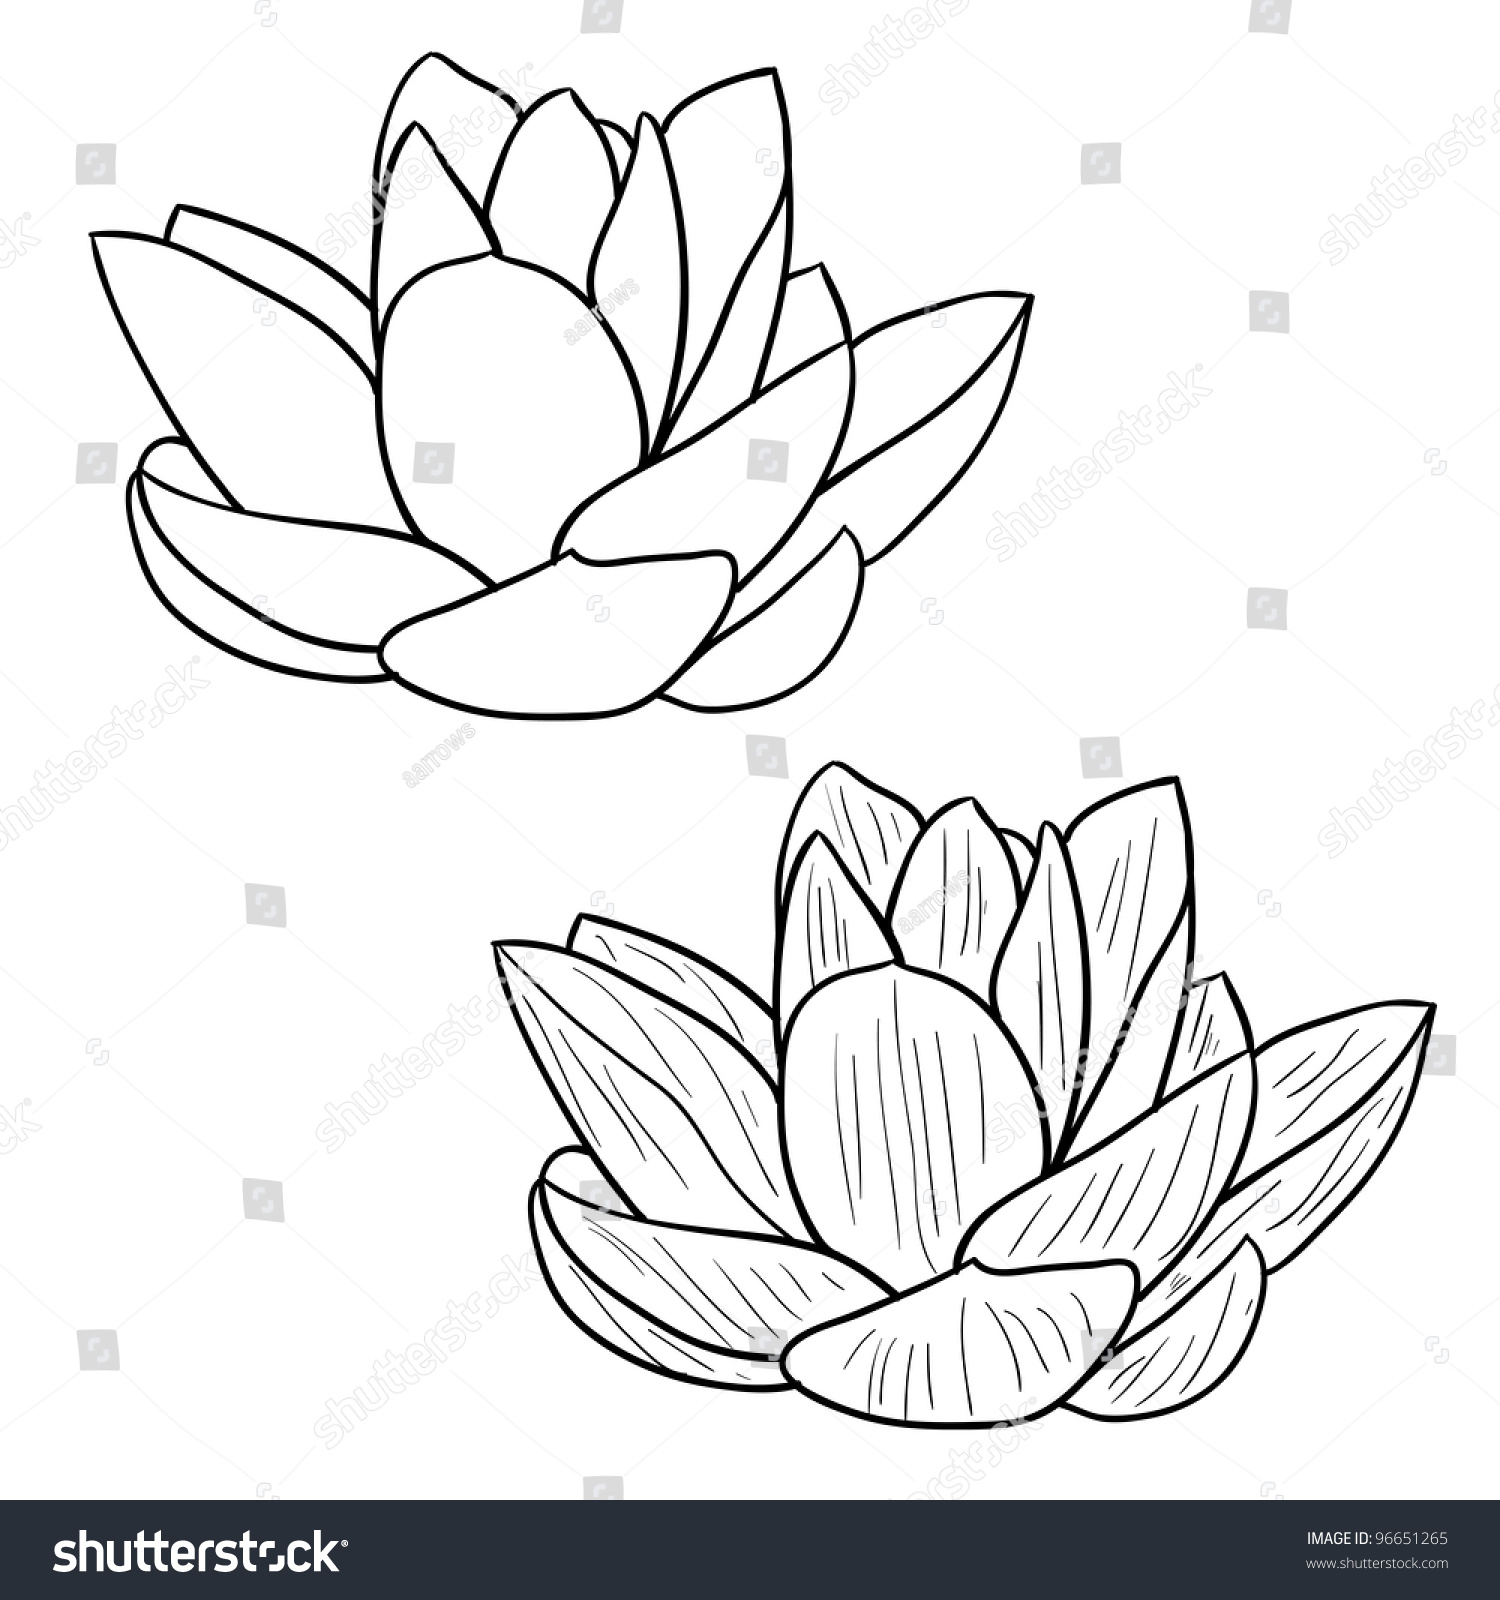 Royalty Free Oriental Lotus A Flower Illustration 96651265 Stock